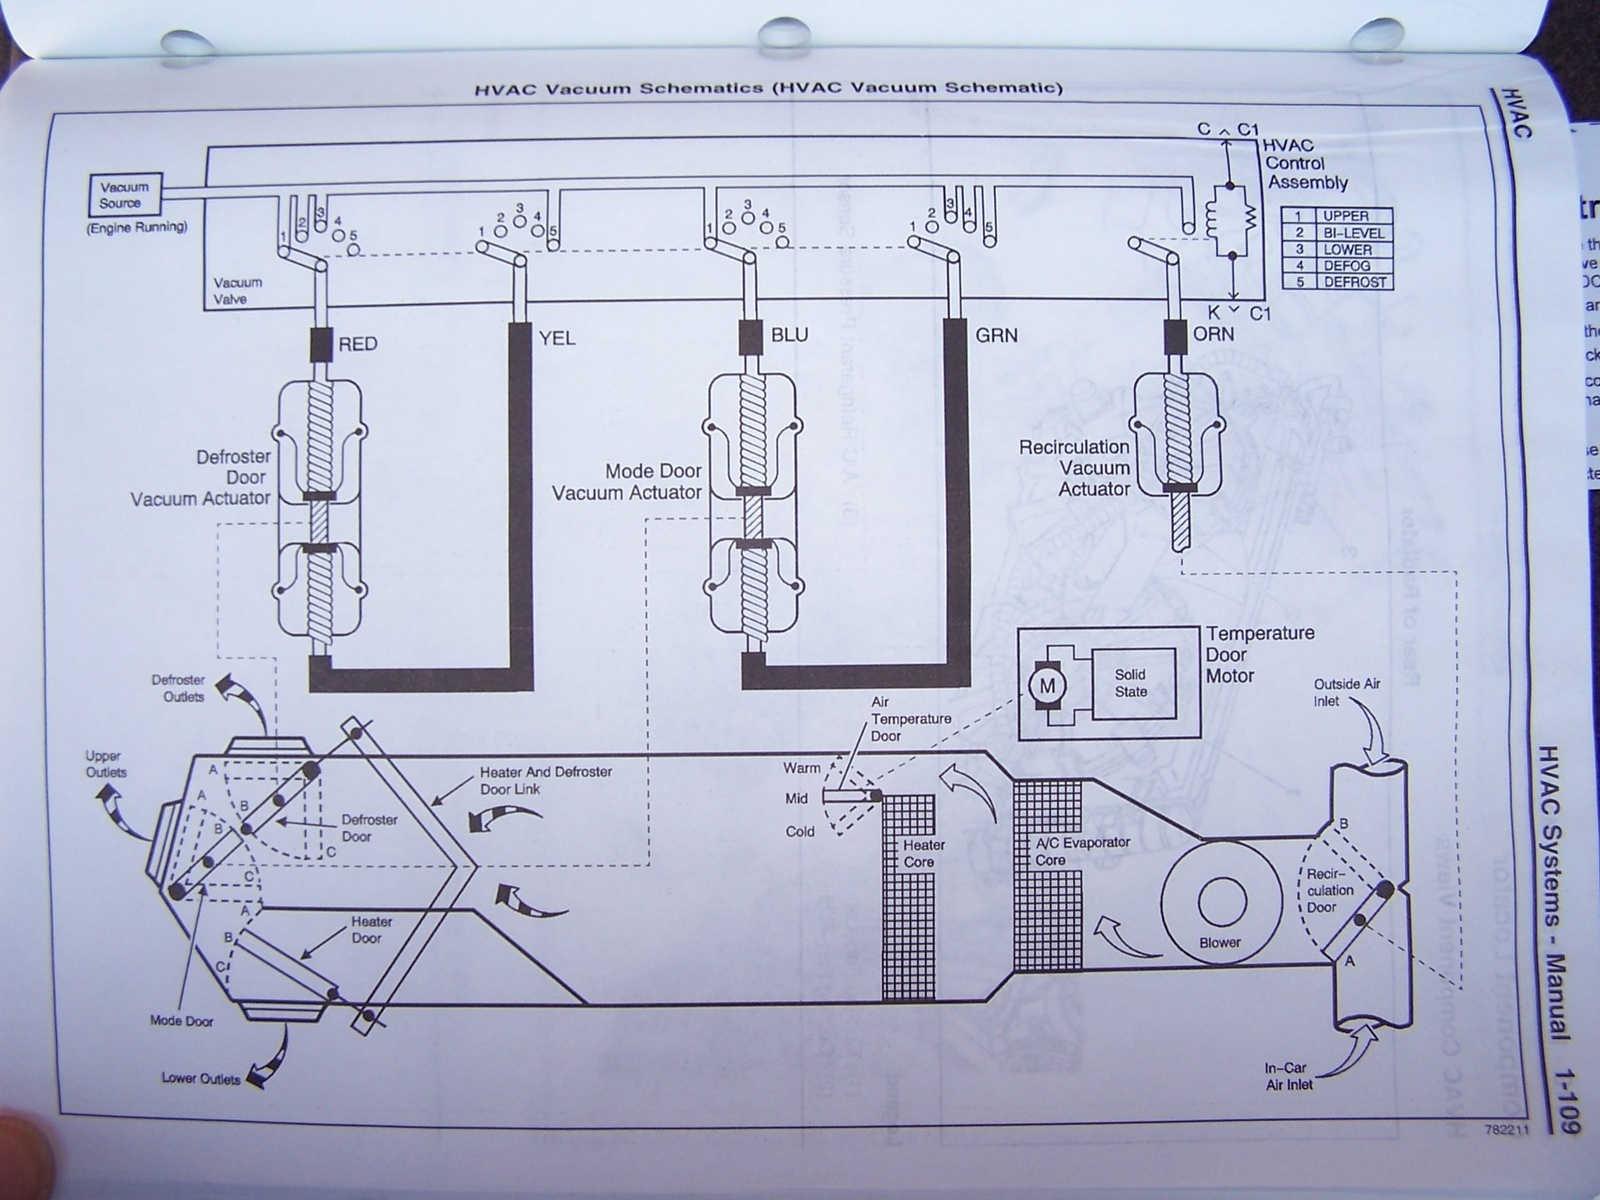 WRG-2077] 2001 Oldsmobile Alero Engine Diagram on